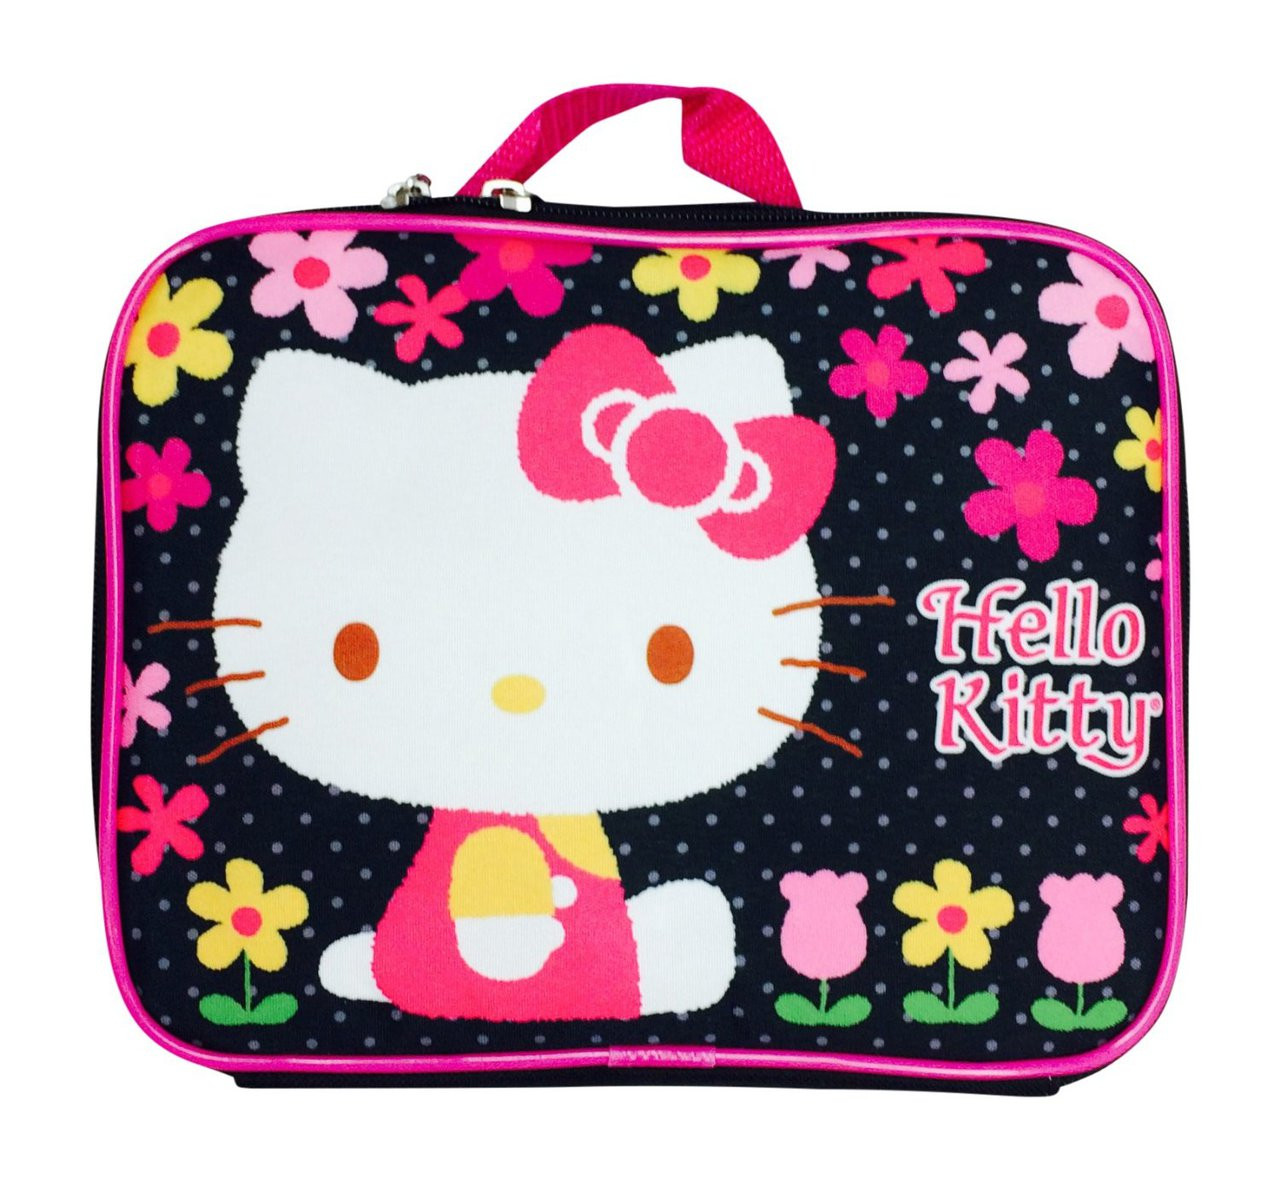 7283fe566f Sanrio Hello Kitty Floral Lunch Bag - Kids Whs